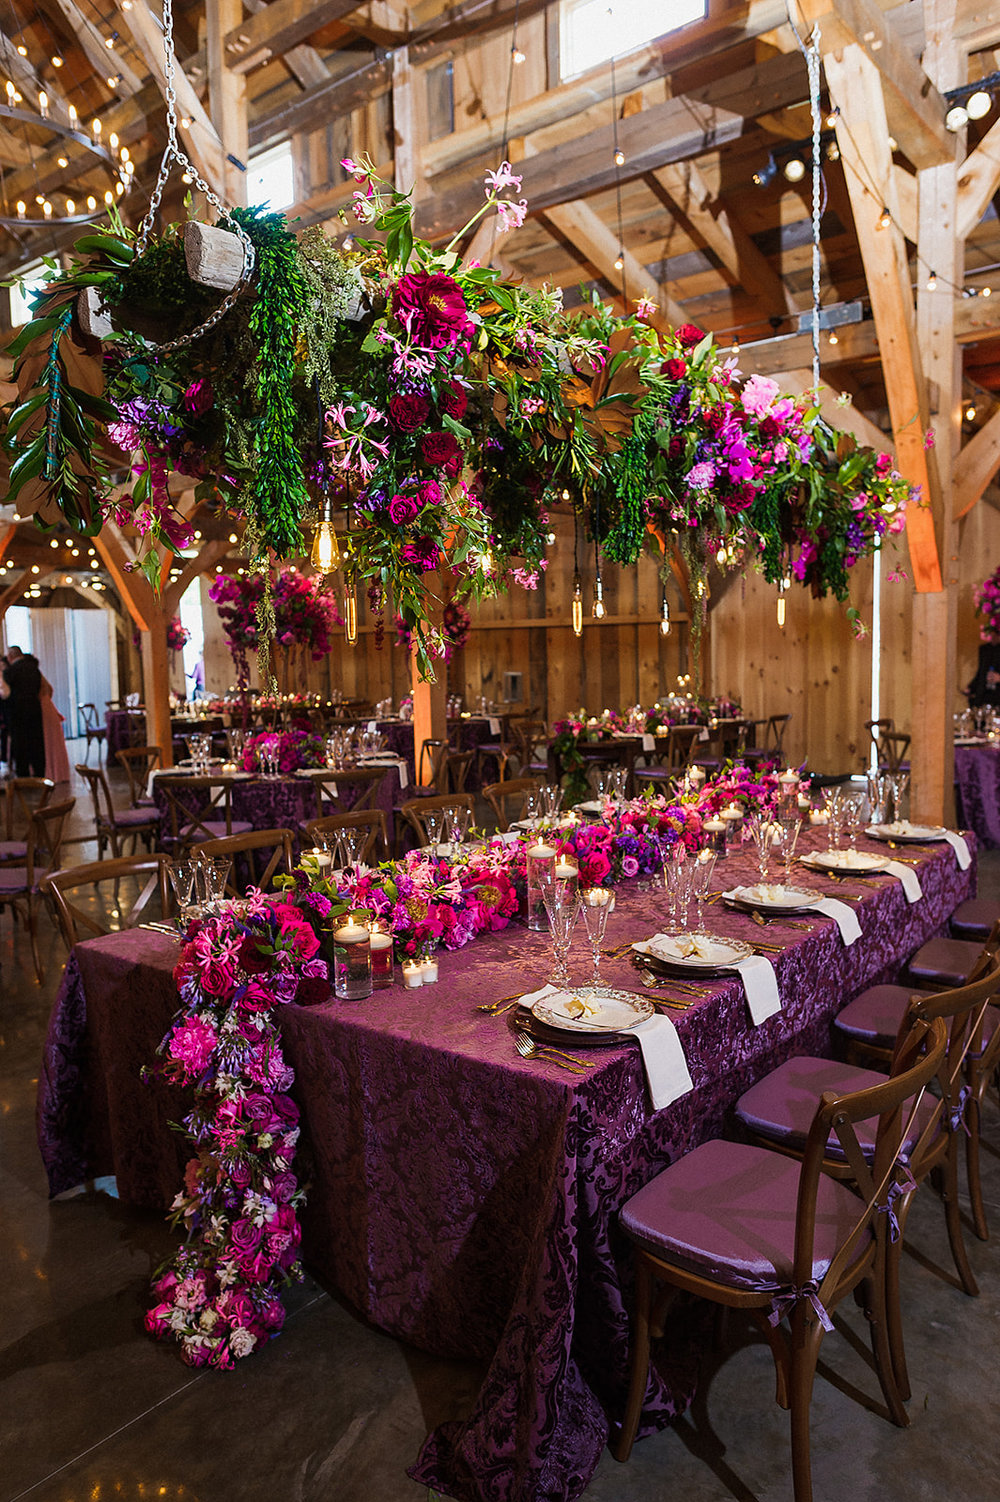 Overhead-hanging-flowers-head-table-Barn-at-Lord-Howe-Valley